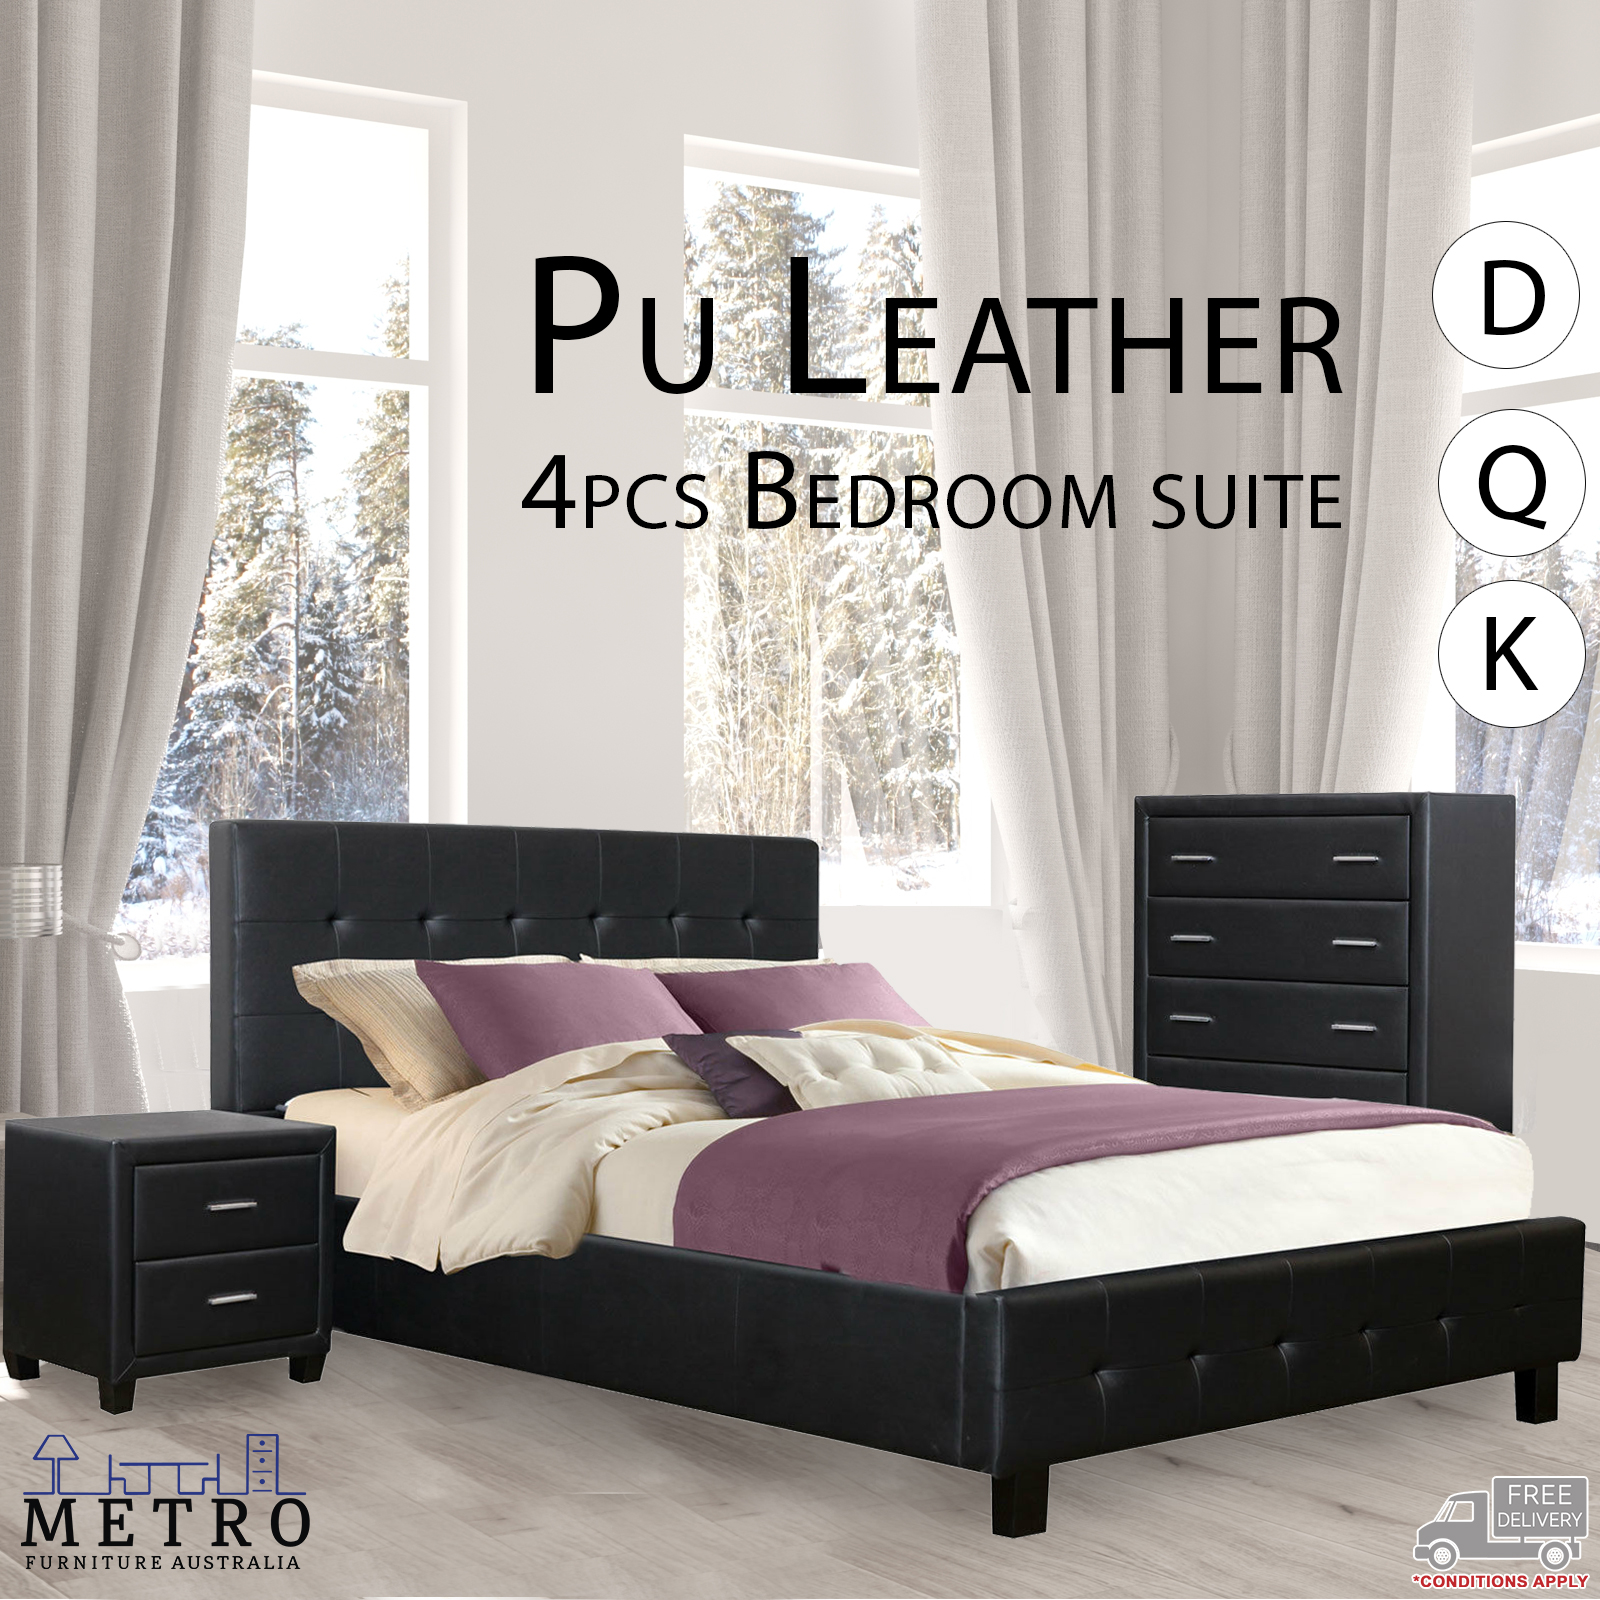 Details about New Luxury Best Quality PU Leather 4Pcs Bedroom Suite Double  Queen King Size